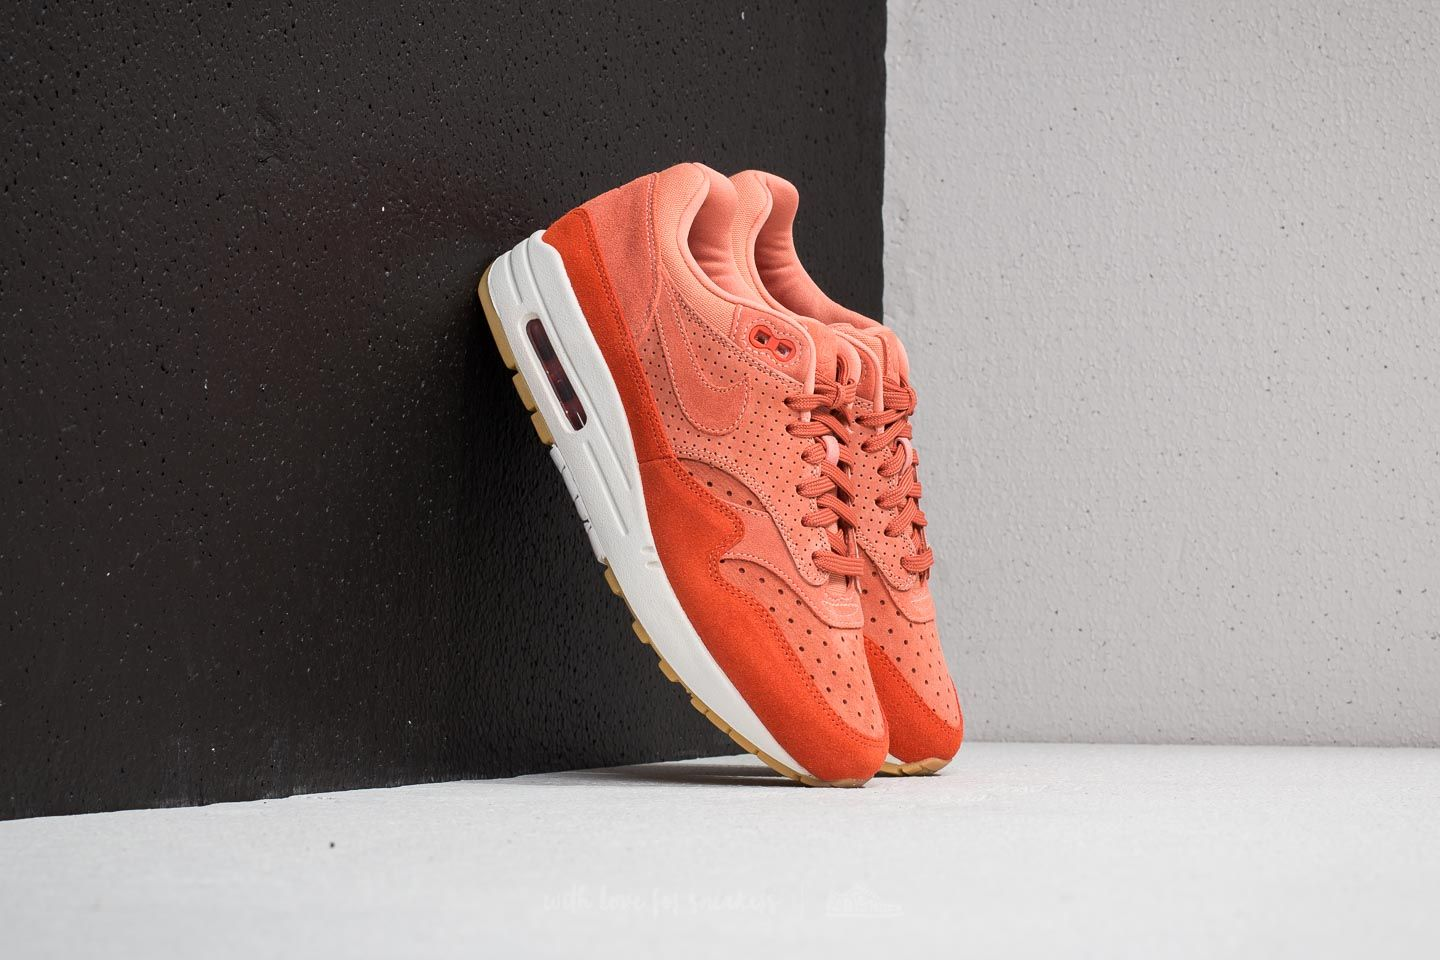 Nike Air Max 1 Premium WMNS Crimson Bliss/ Crimson Bliss